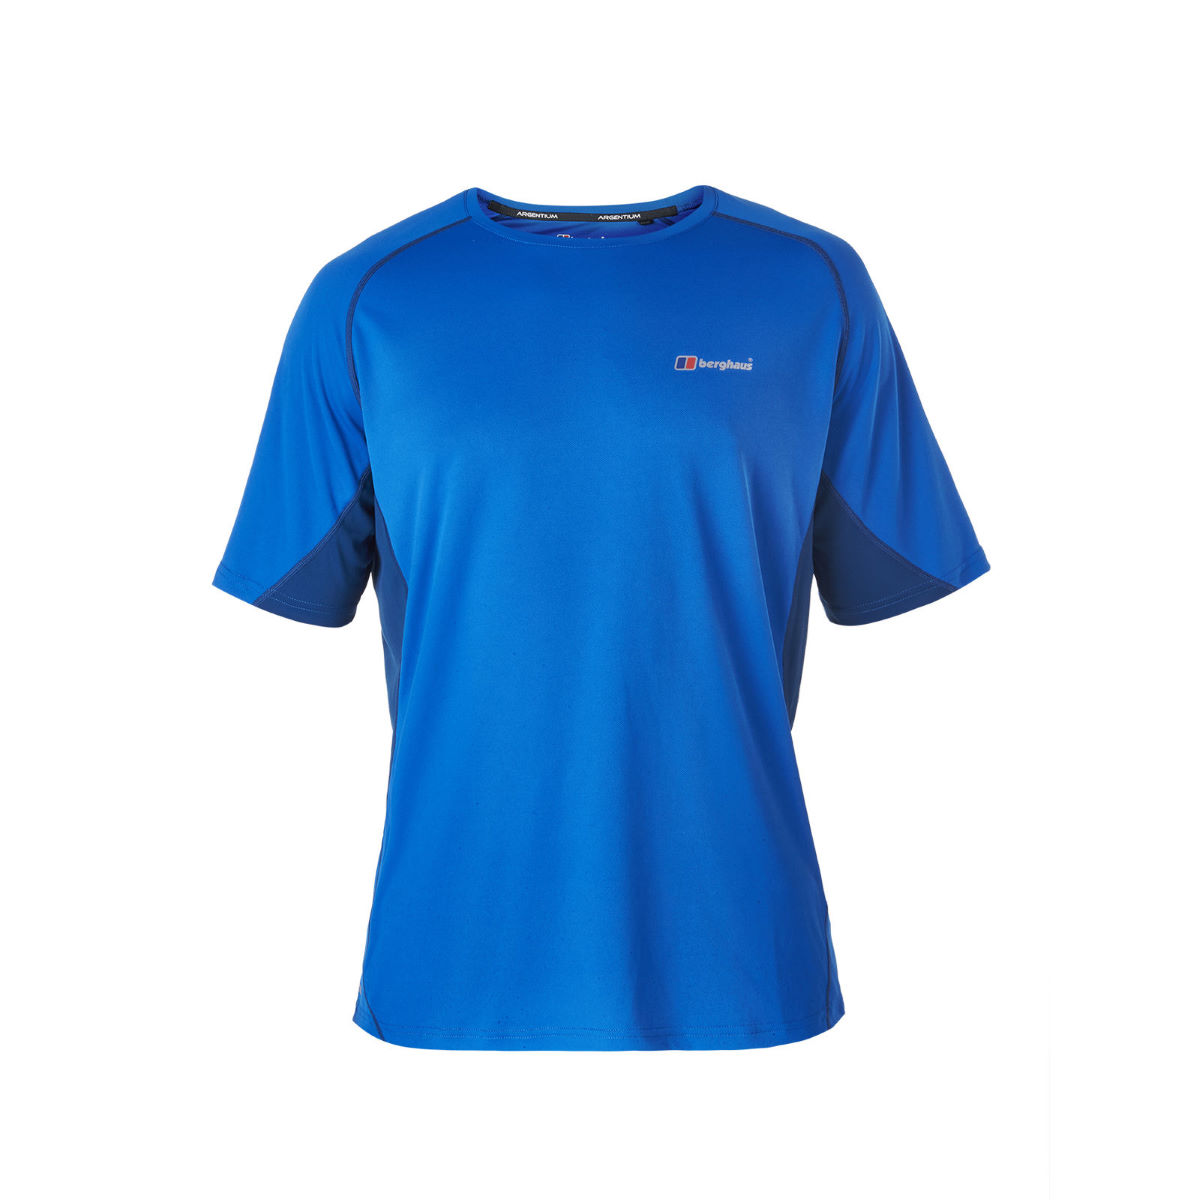 Maillot Berghaus Tech (col rond, manches courtes) - S Snorkel Blue